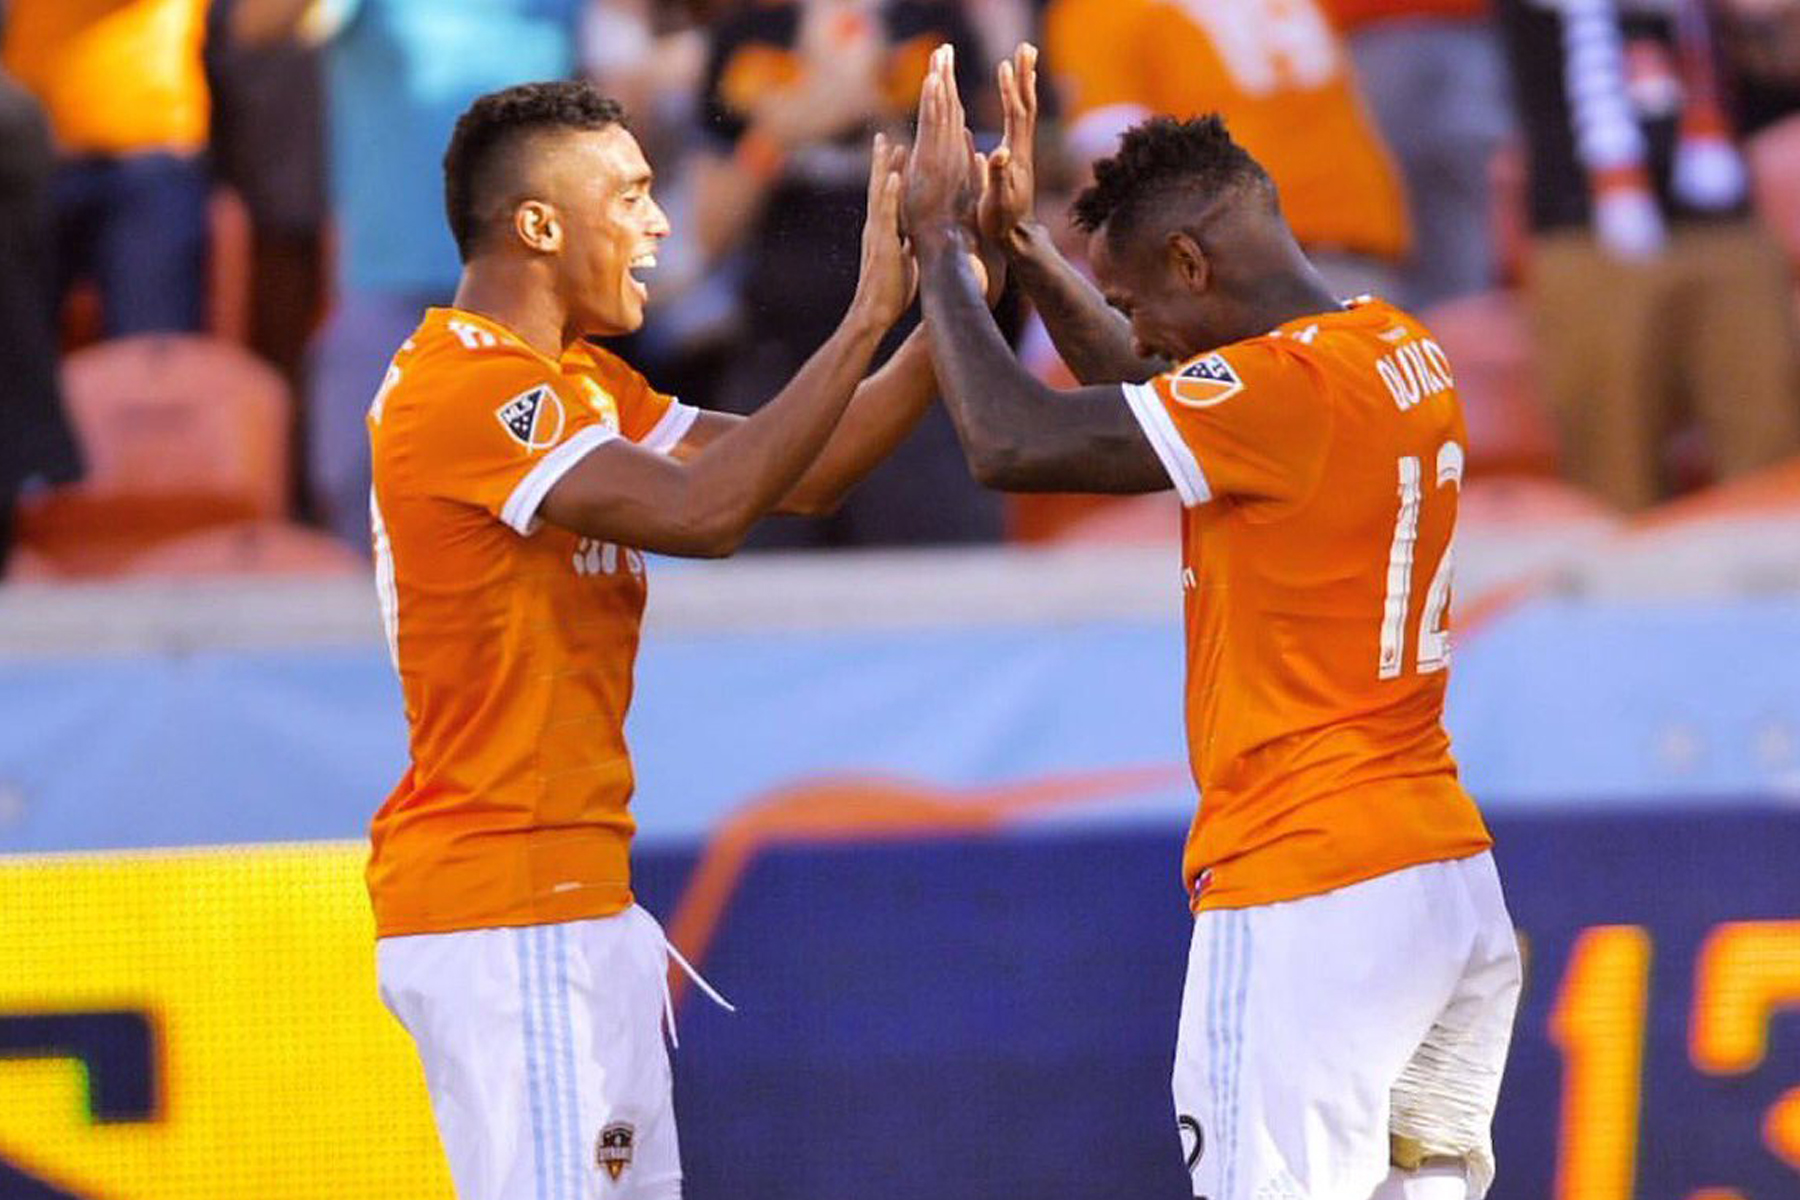 VIDEO: Lesionan a Romell Quioto tras golazo con el Houston Dynamo